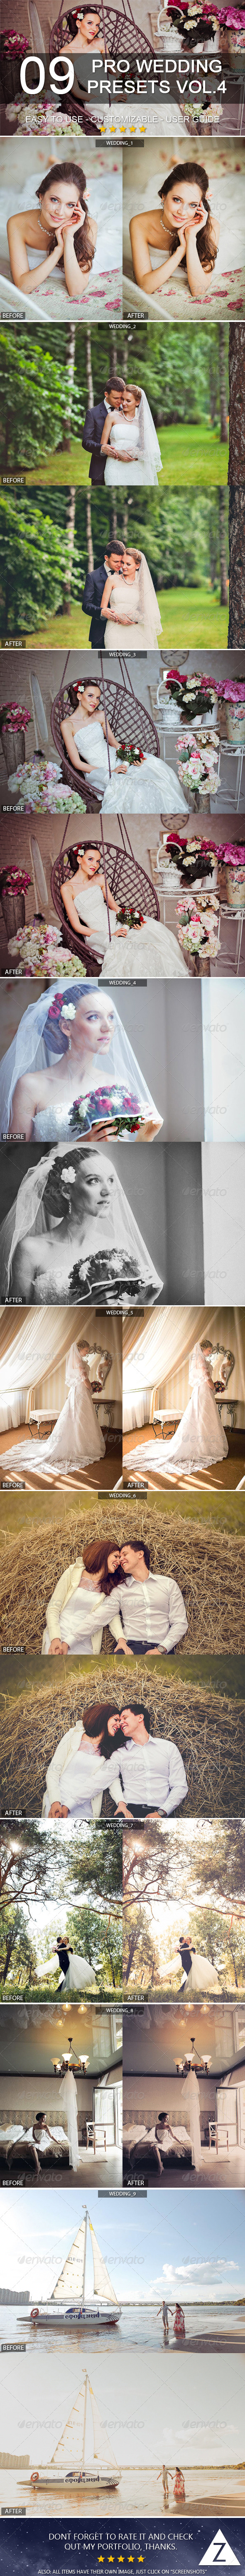 GraphicRiver 9 Pro Wedding Presets vol.4 7198261